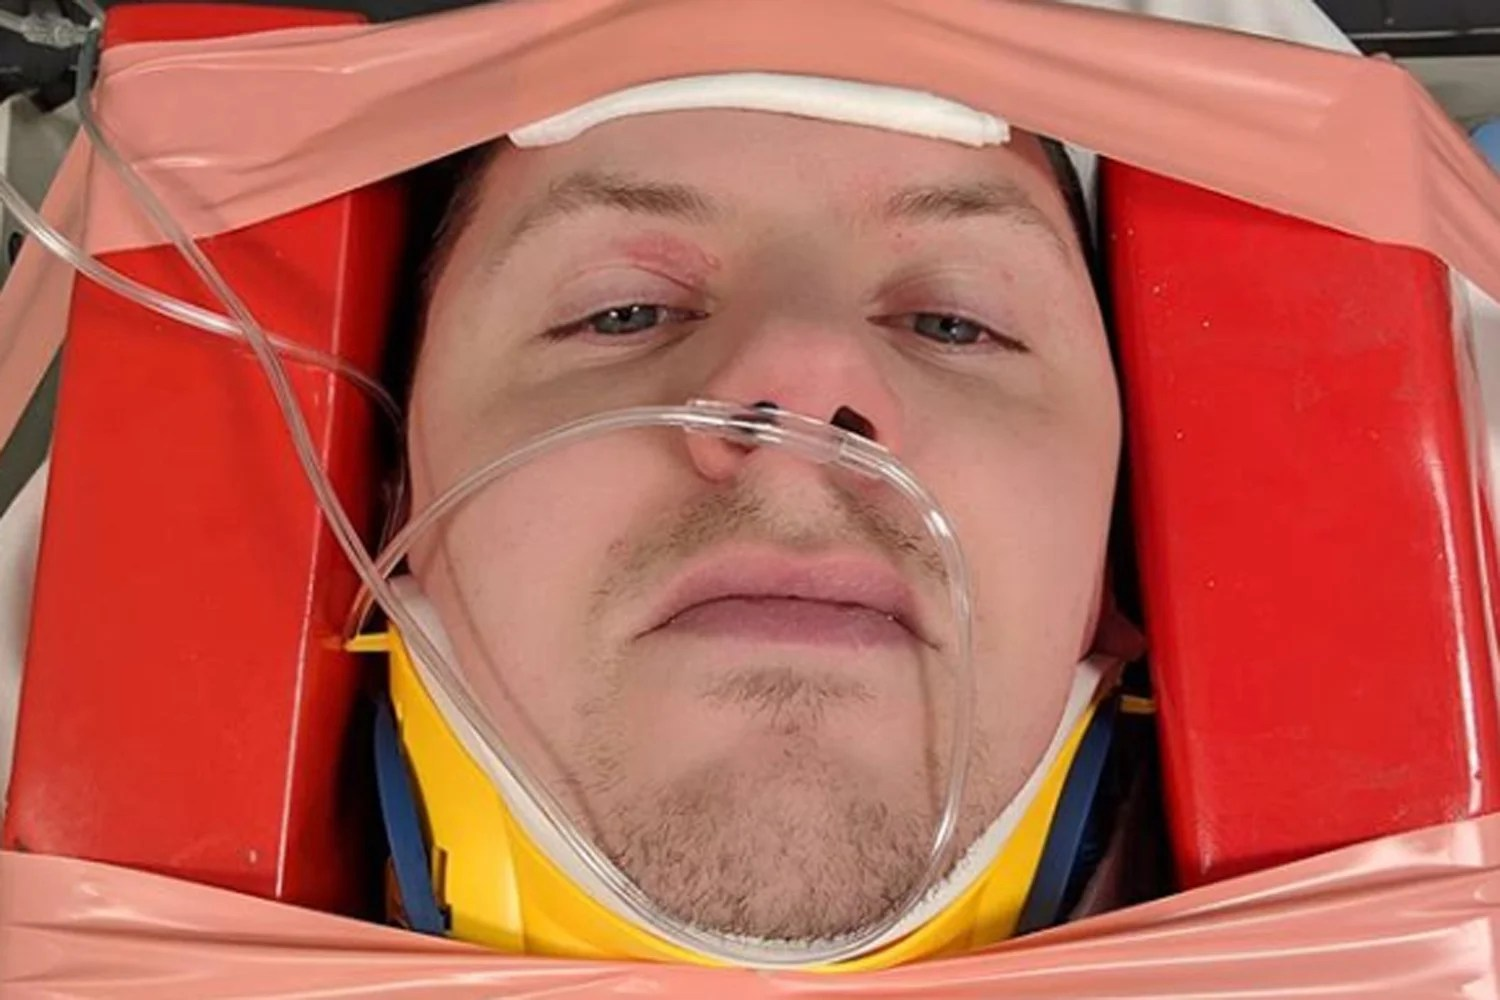 progreen1a Professor Green cancels tour after fracturing vertebrae in his neck